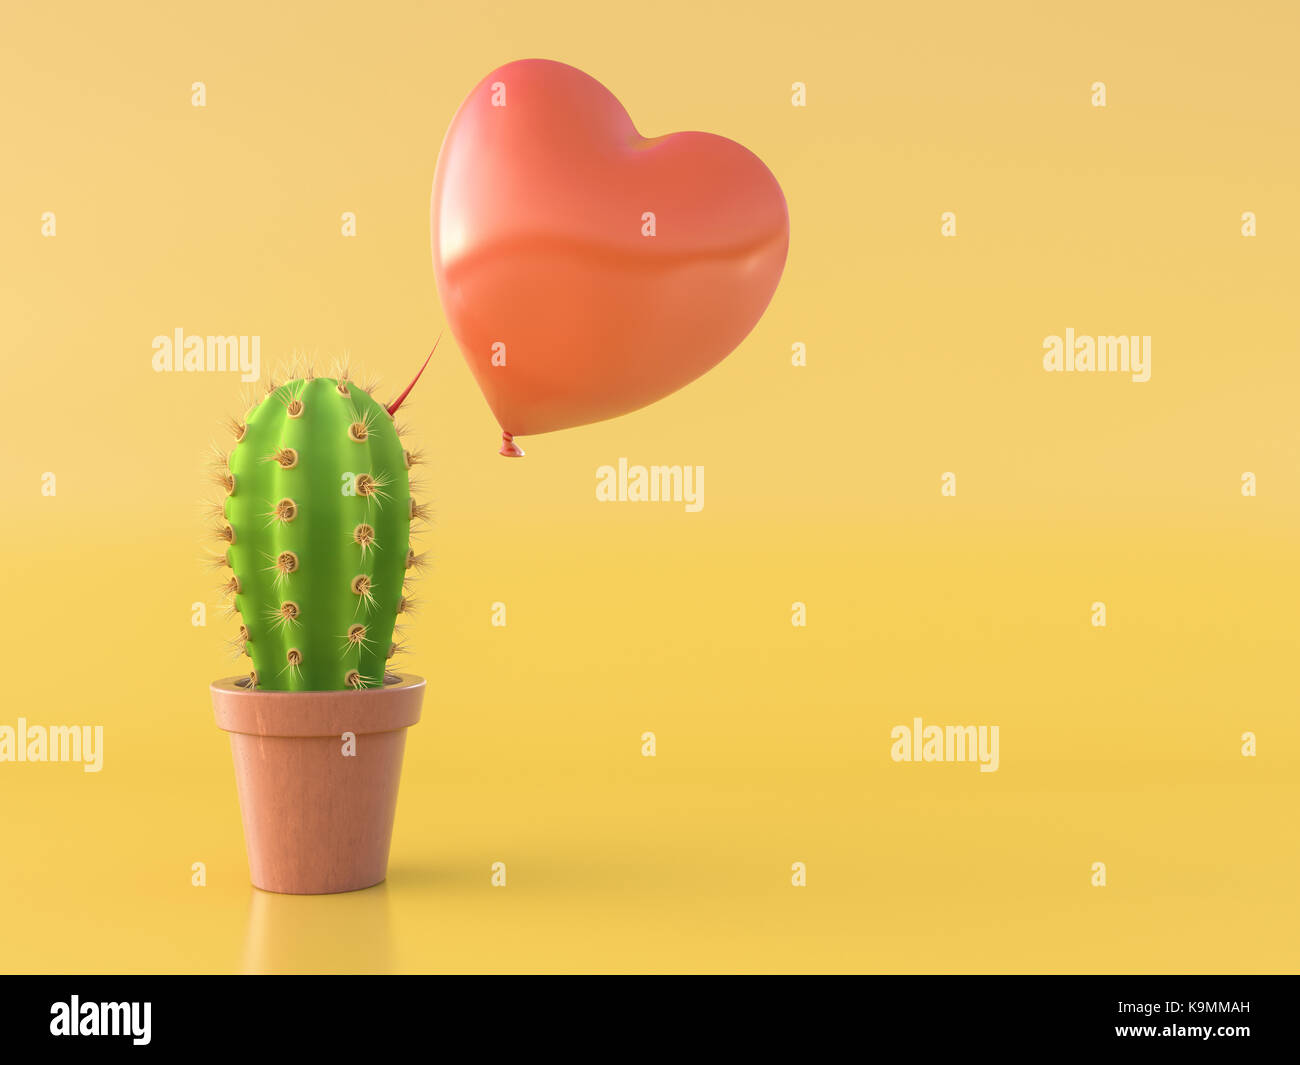 Balloon hovering over a cactus with a red thorn - Stock Image